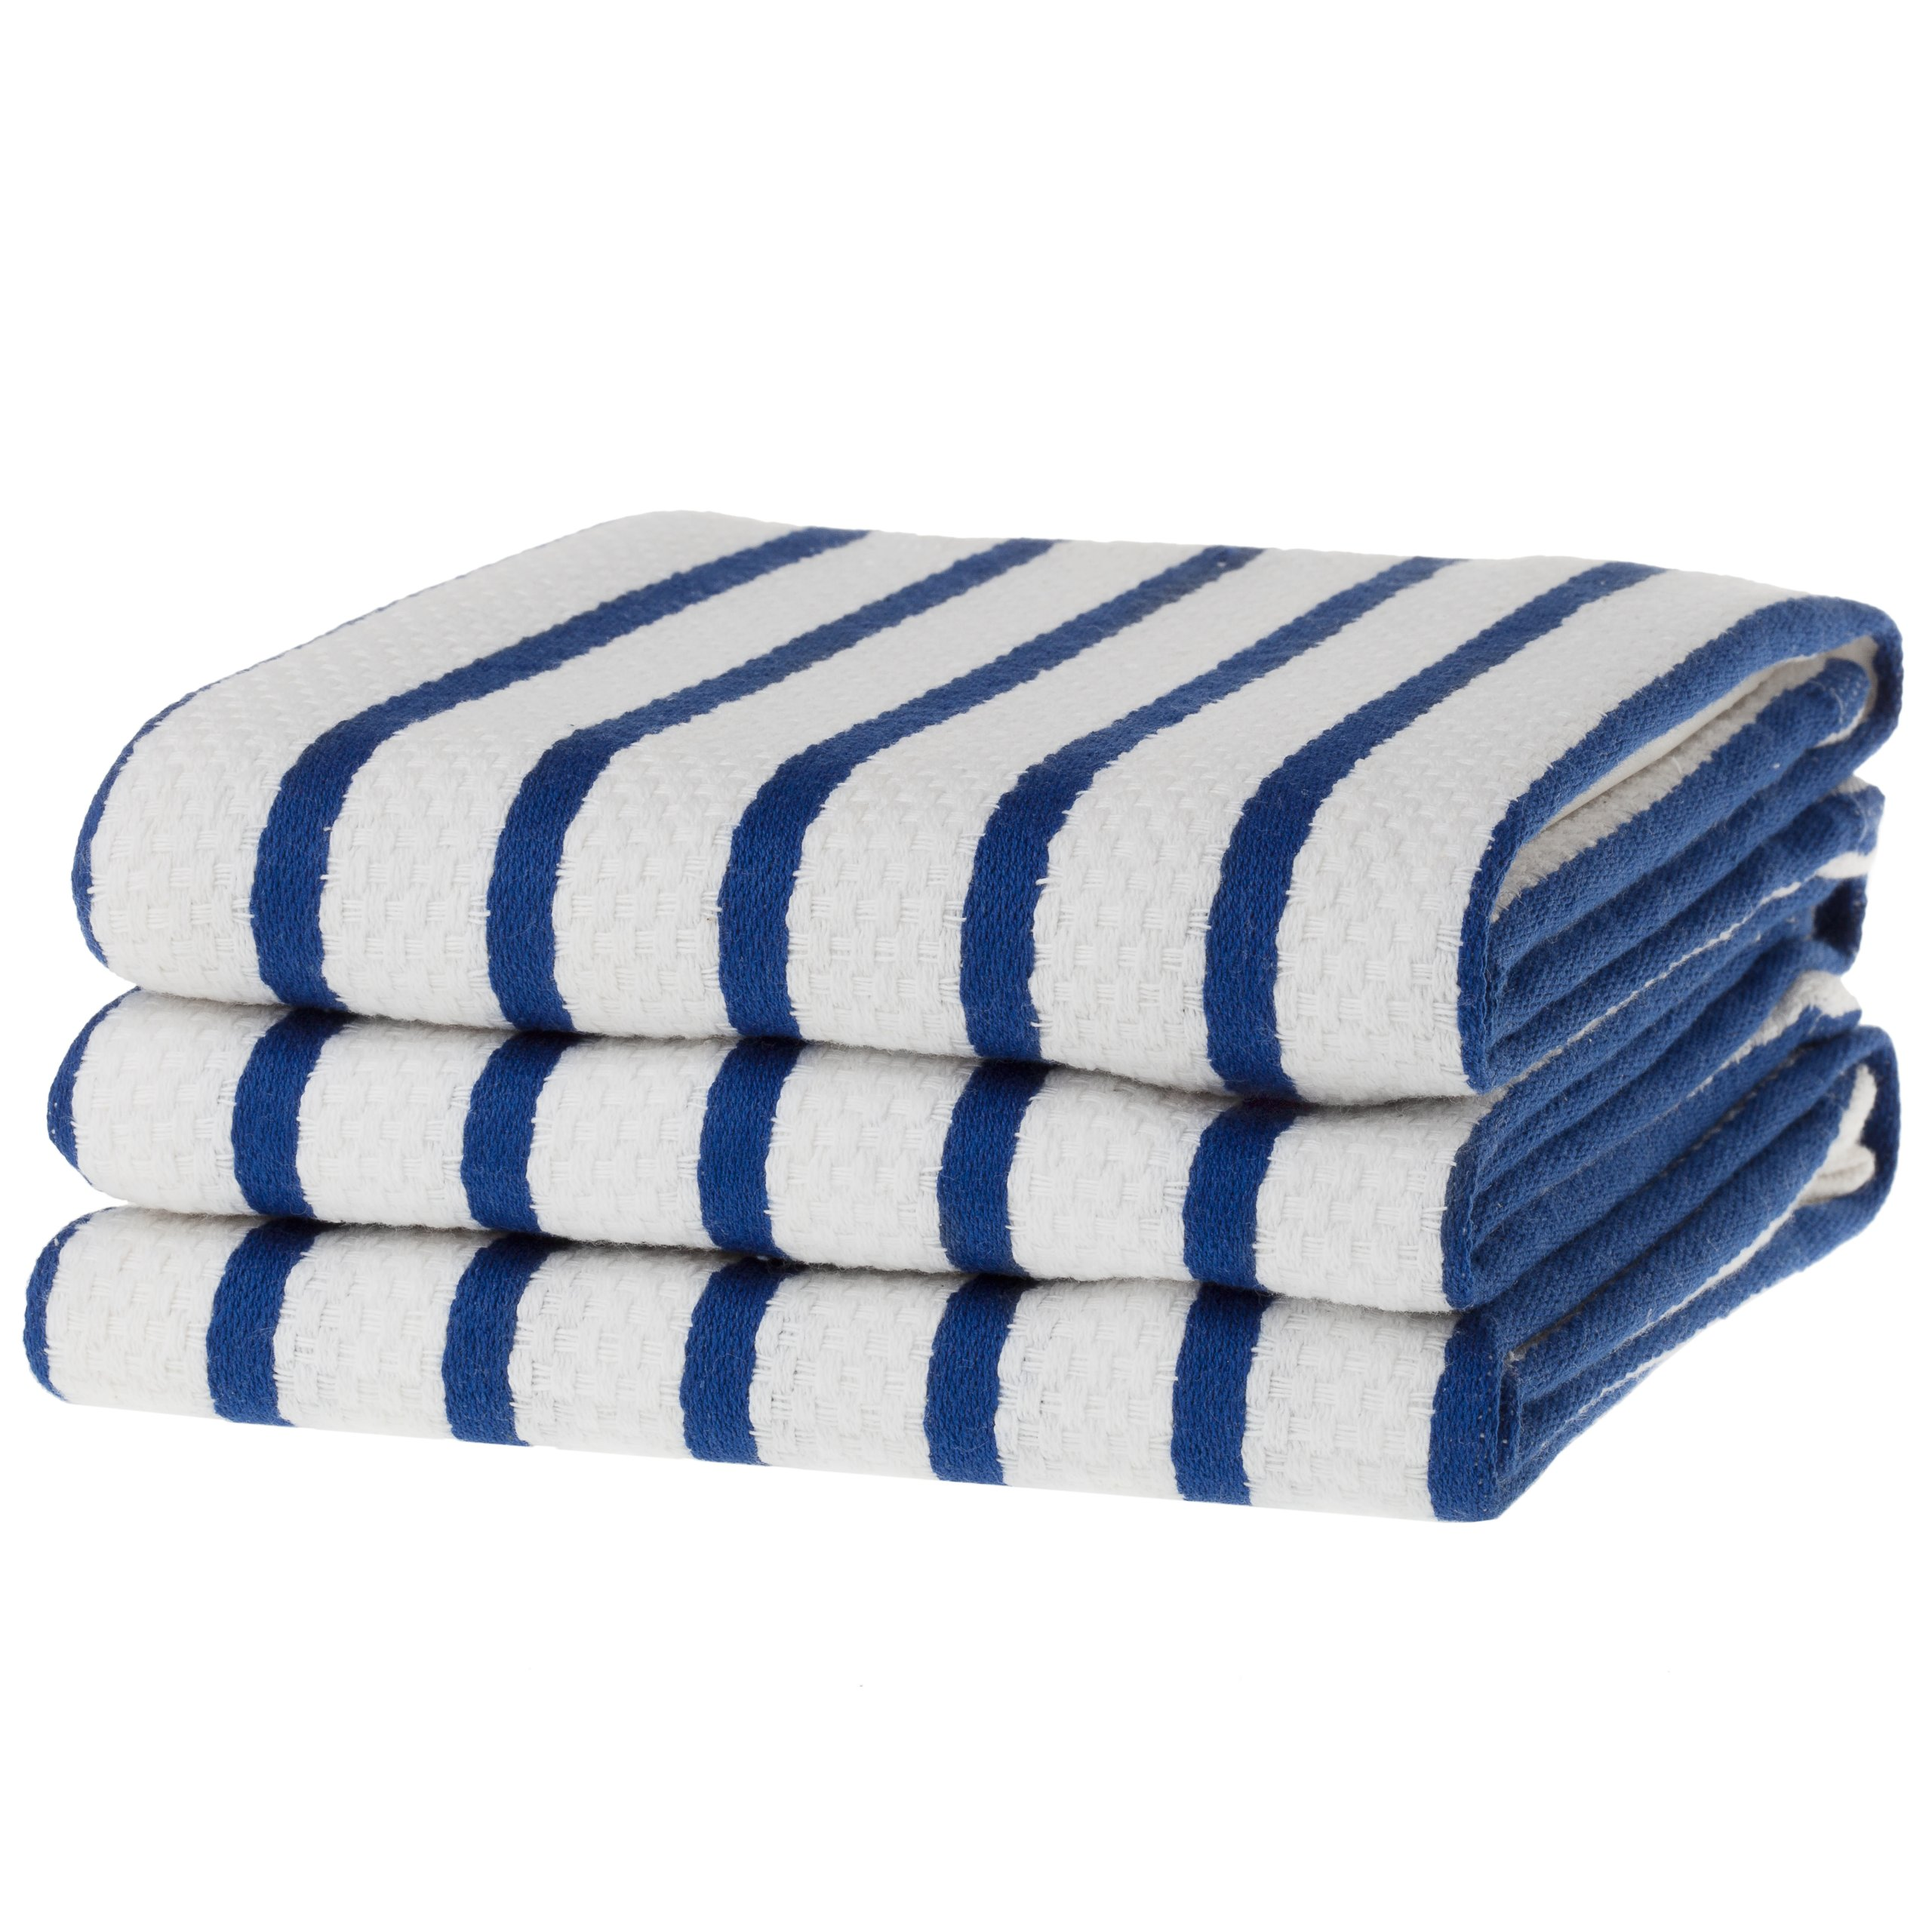 KAF Home Basket Weave Kitchen Towels, White with Royal Blue Stripes, Set of 3, 100% Cotton, Over-sized & Super Absorbent